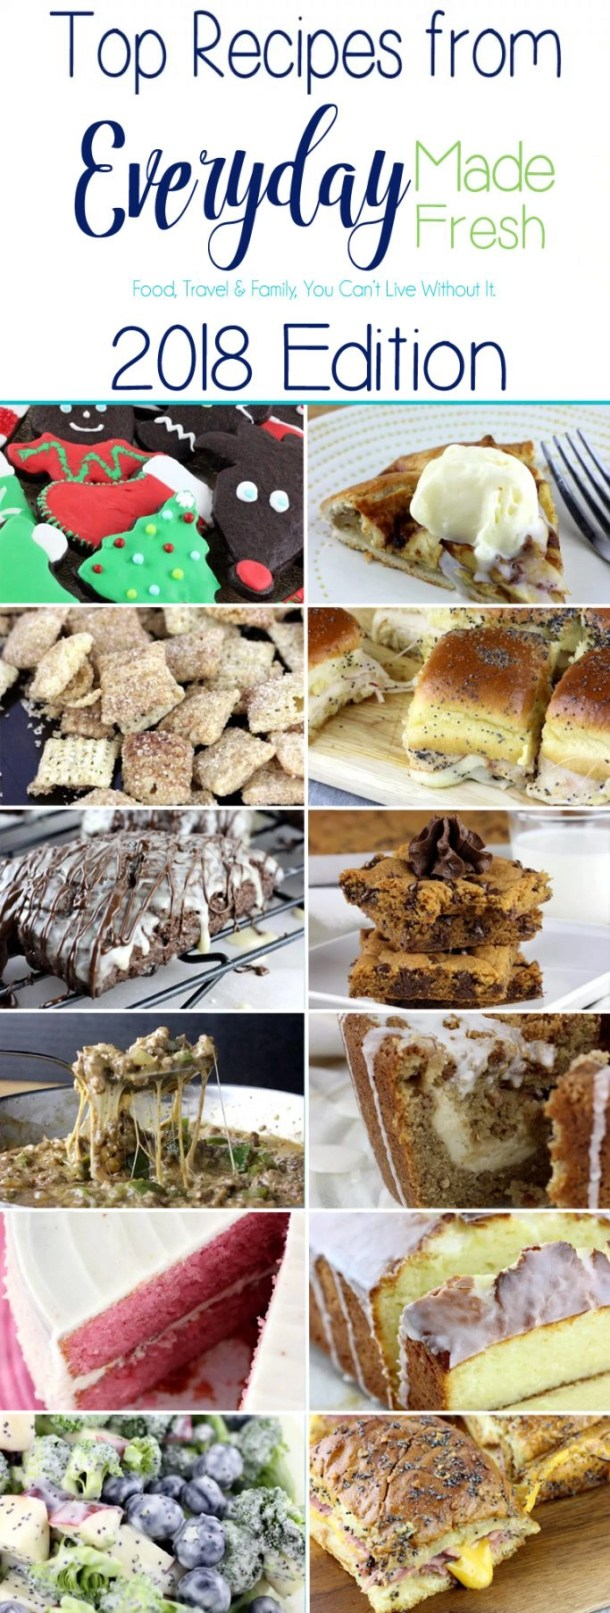 These are the Top Recipes from Everyday Made Fresh 2018 Edition – There were 85 recipes shared in 2018, and these had the most views!   EverydayMadeFresh.com